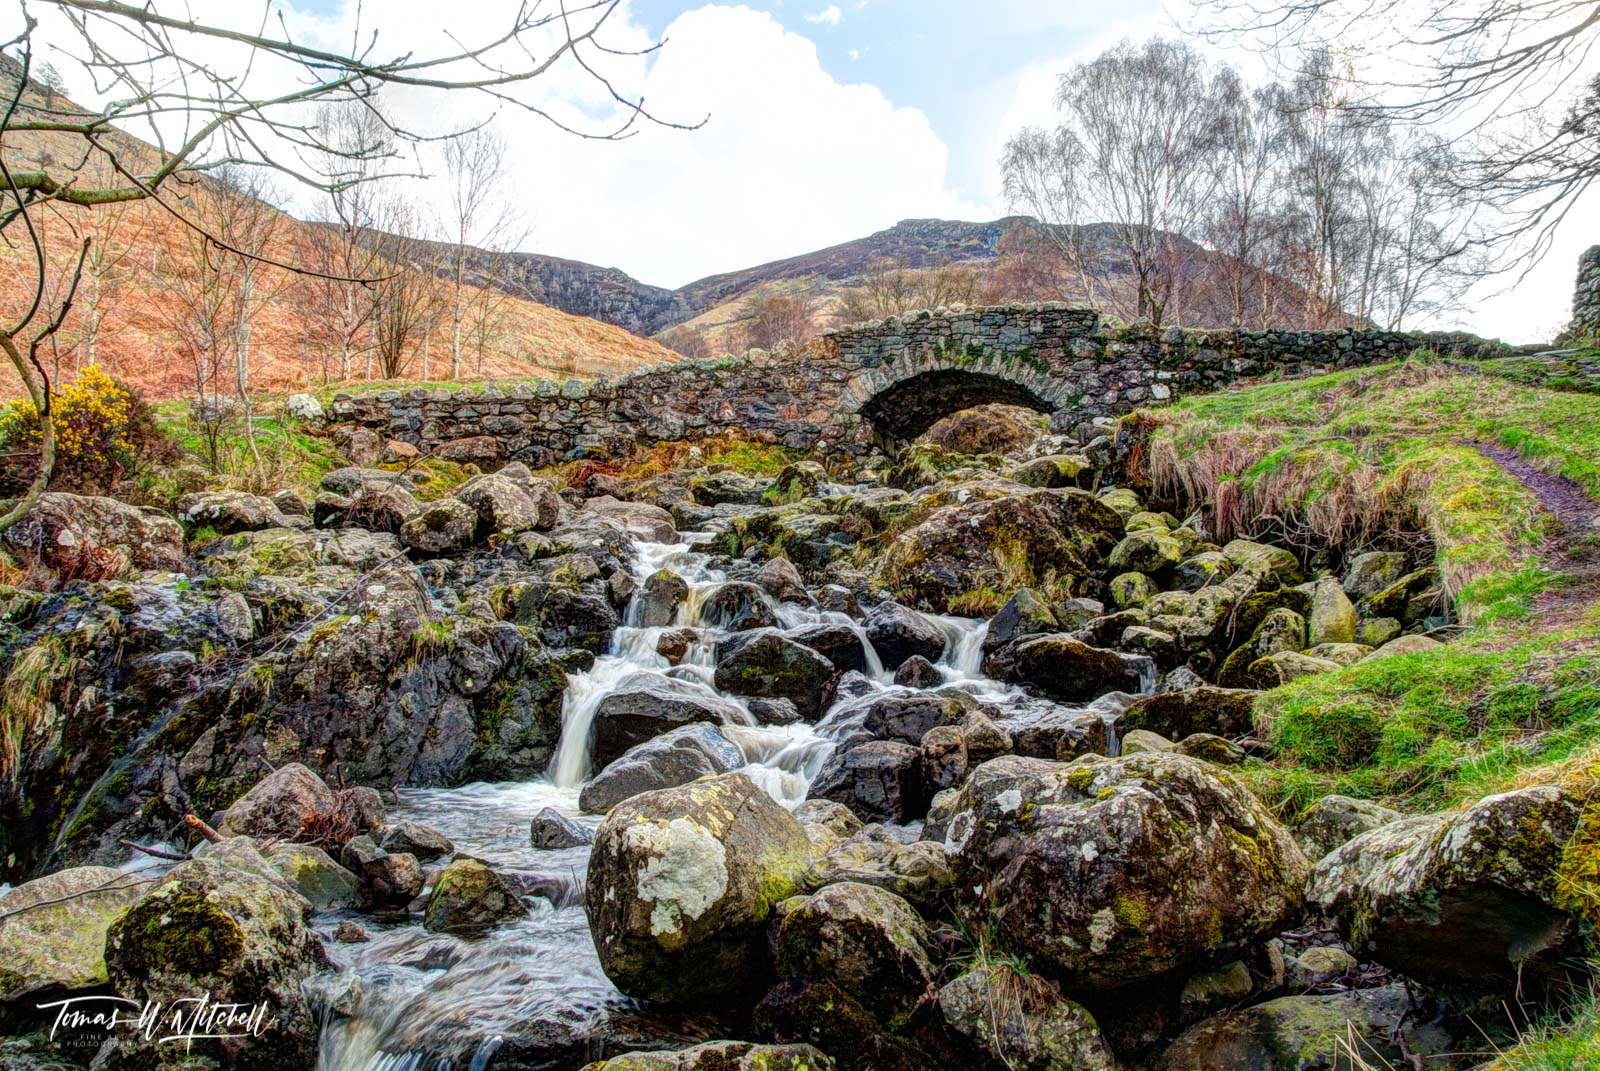 limited edition, museum grade, fine art, prints, river, trolls, ashness bridge, lake district, england, frozen, moss, rocks, magical, stone bridge, 1700's, forest side inn, grasmere,  old bridges, photo